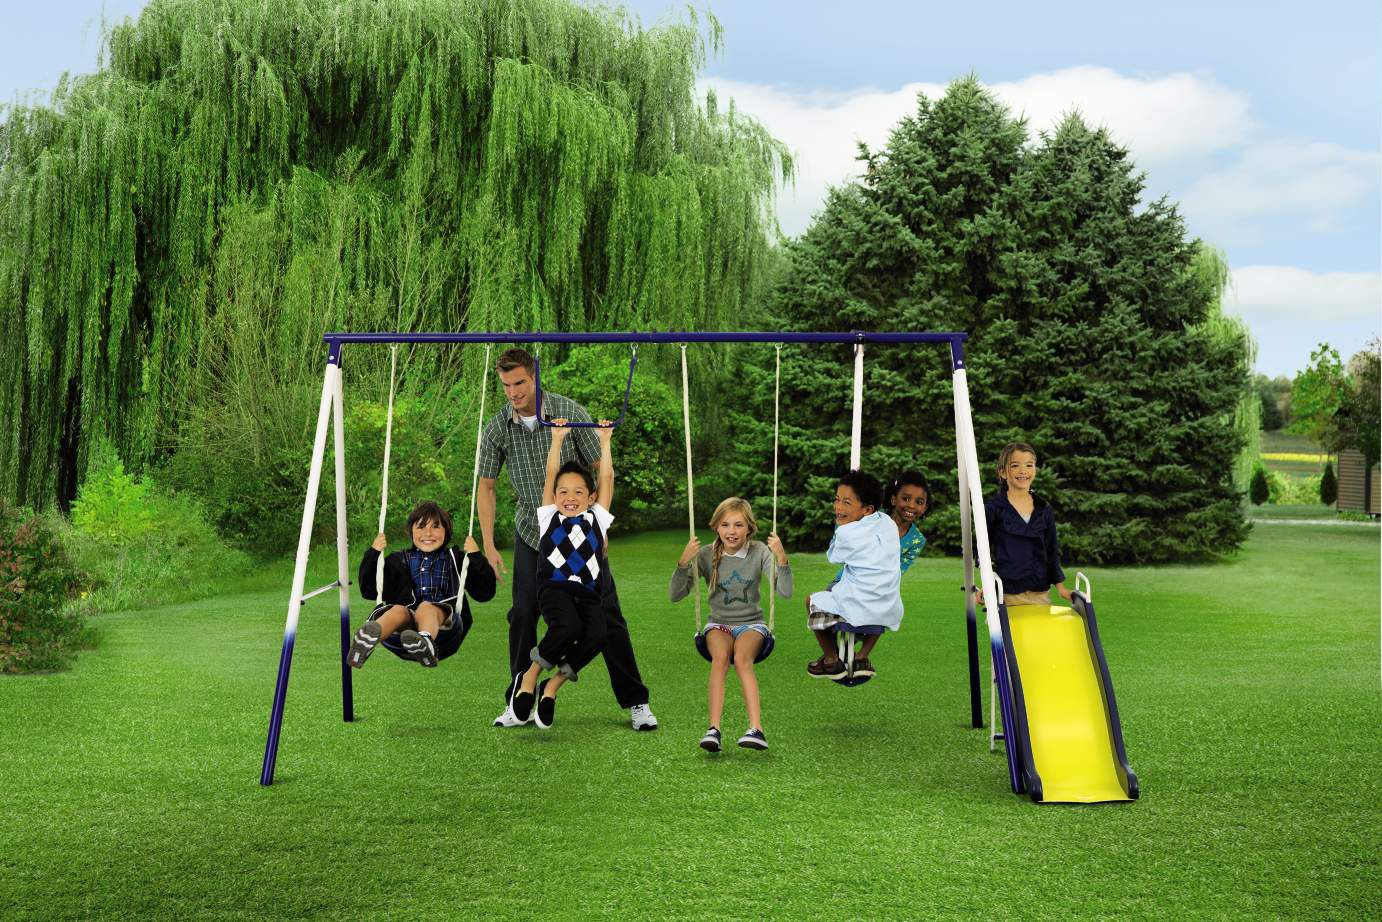 4 Leg Metal Swing Set Classic Year Round Fun For Ages 3 8 From Kmart